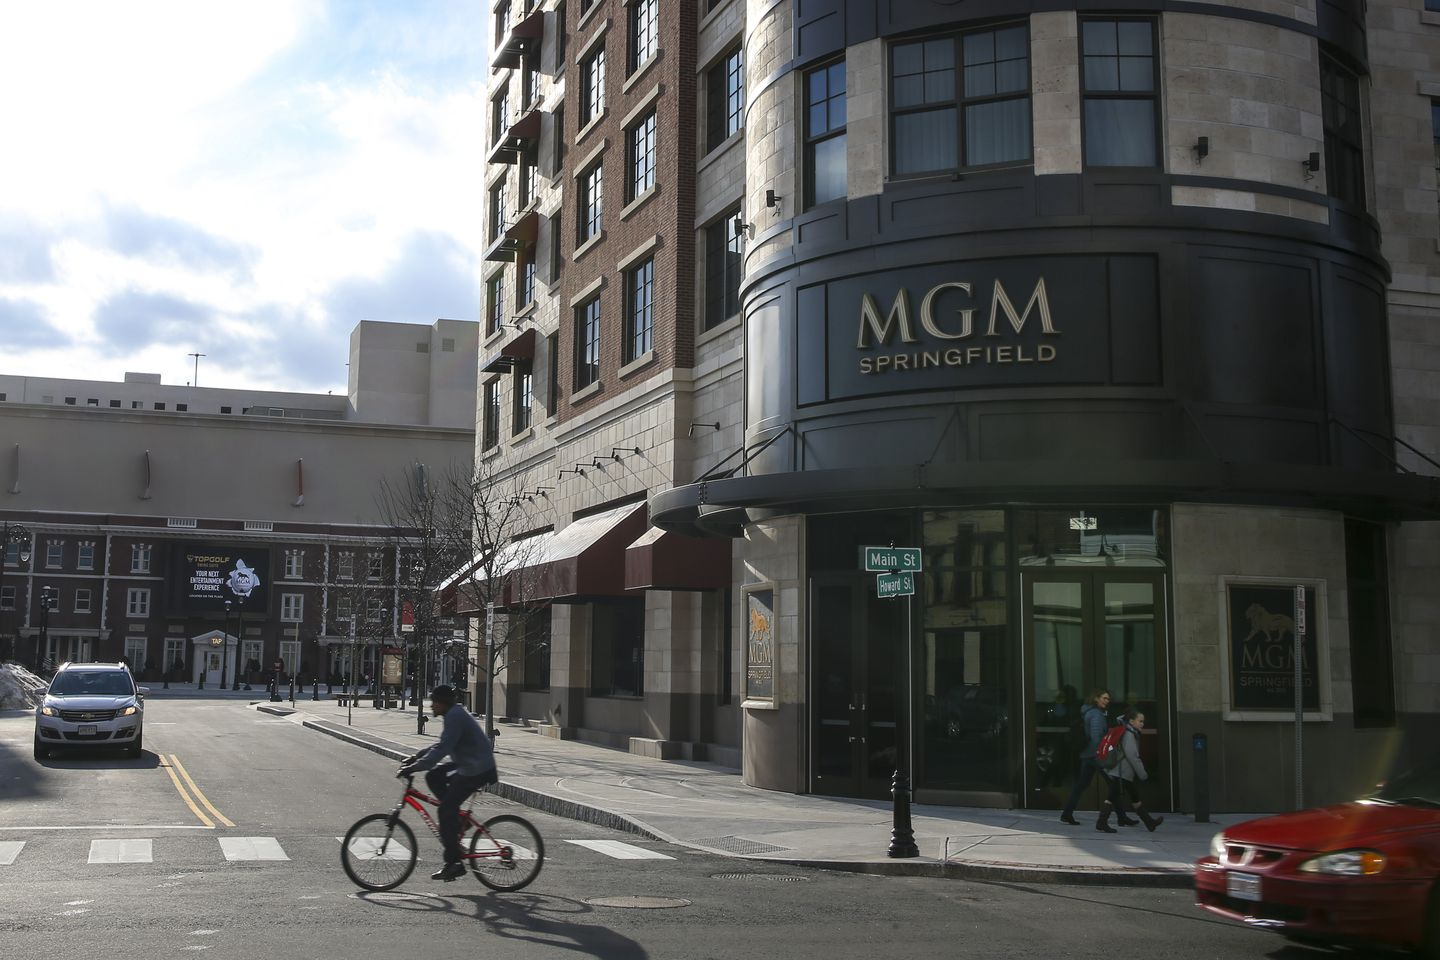 The $960 million MGM Springfield employs about 2,865 and has had more than 2 million visitors since opening in August.